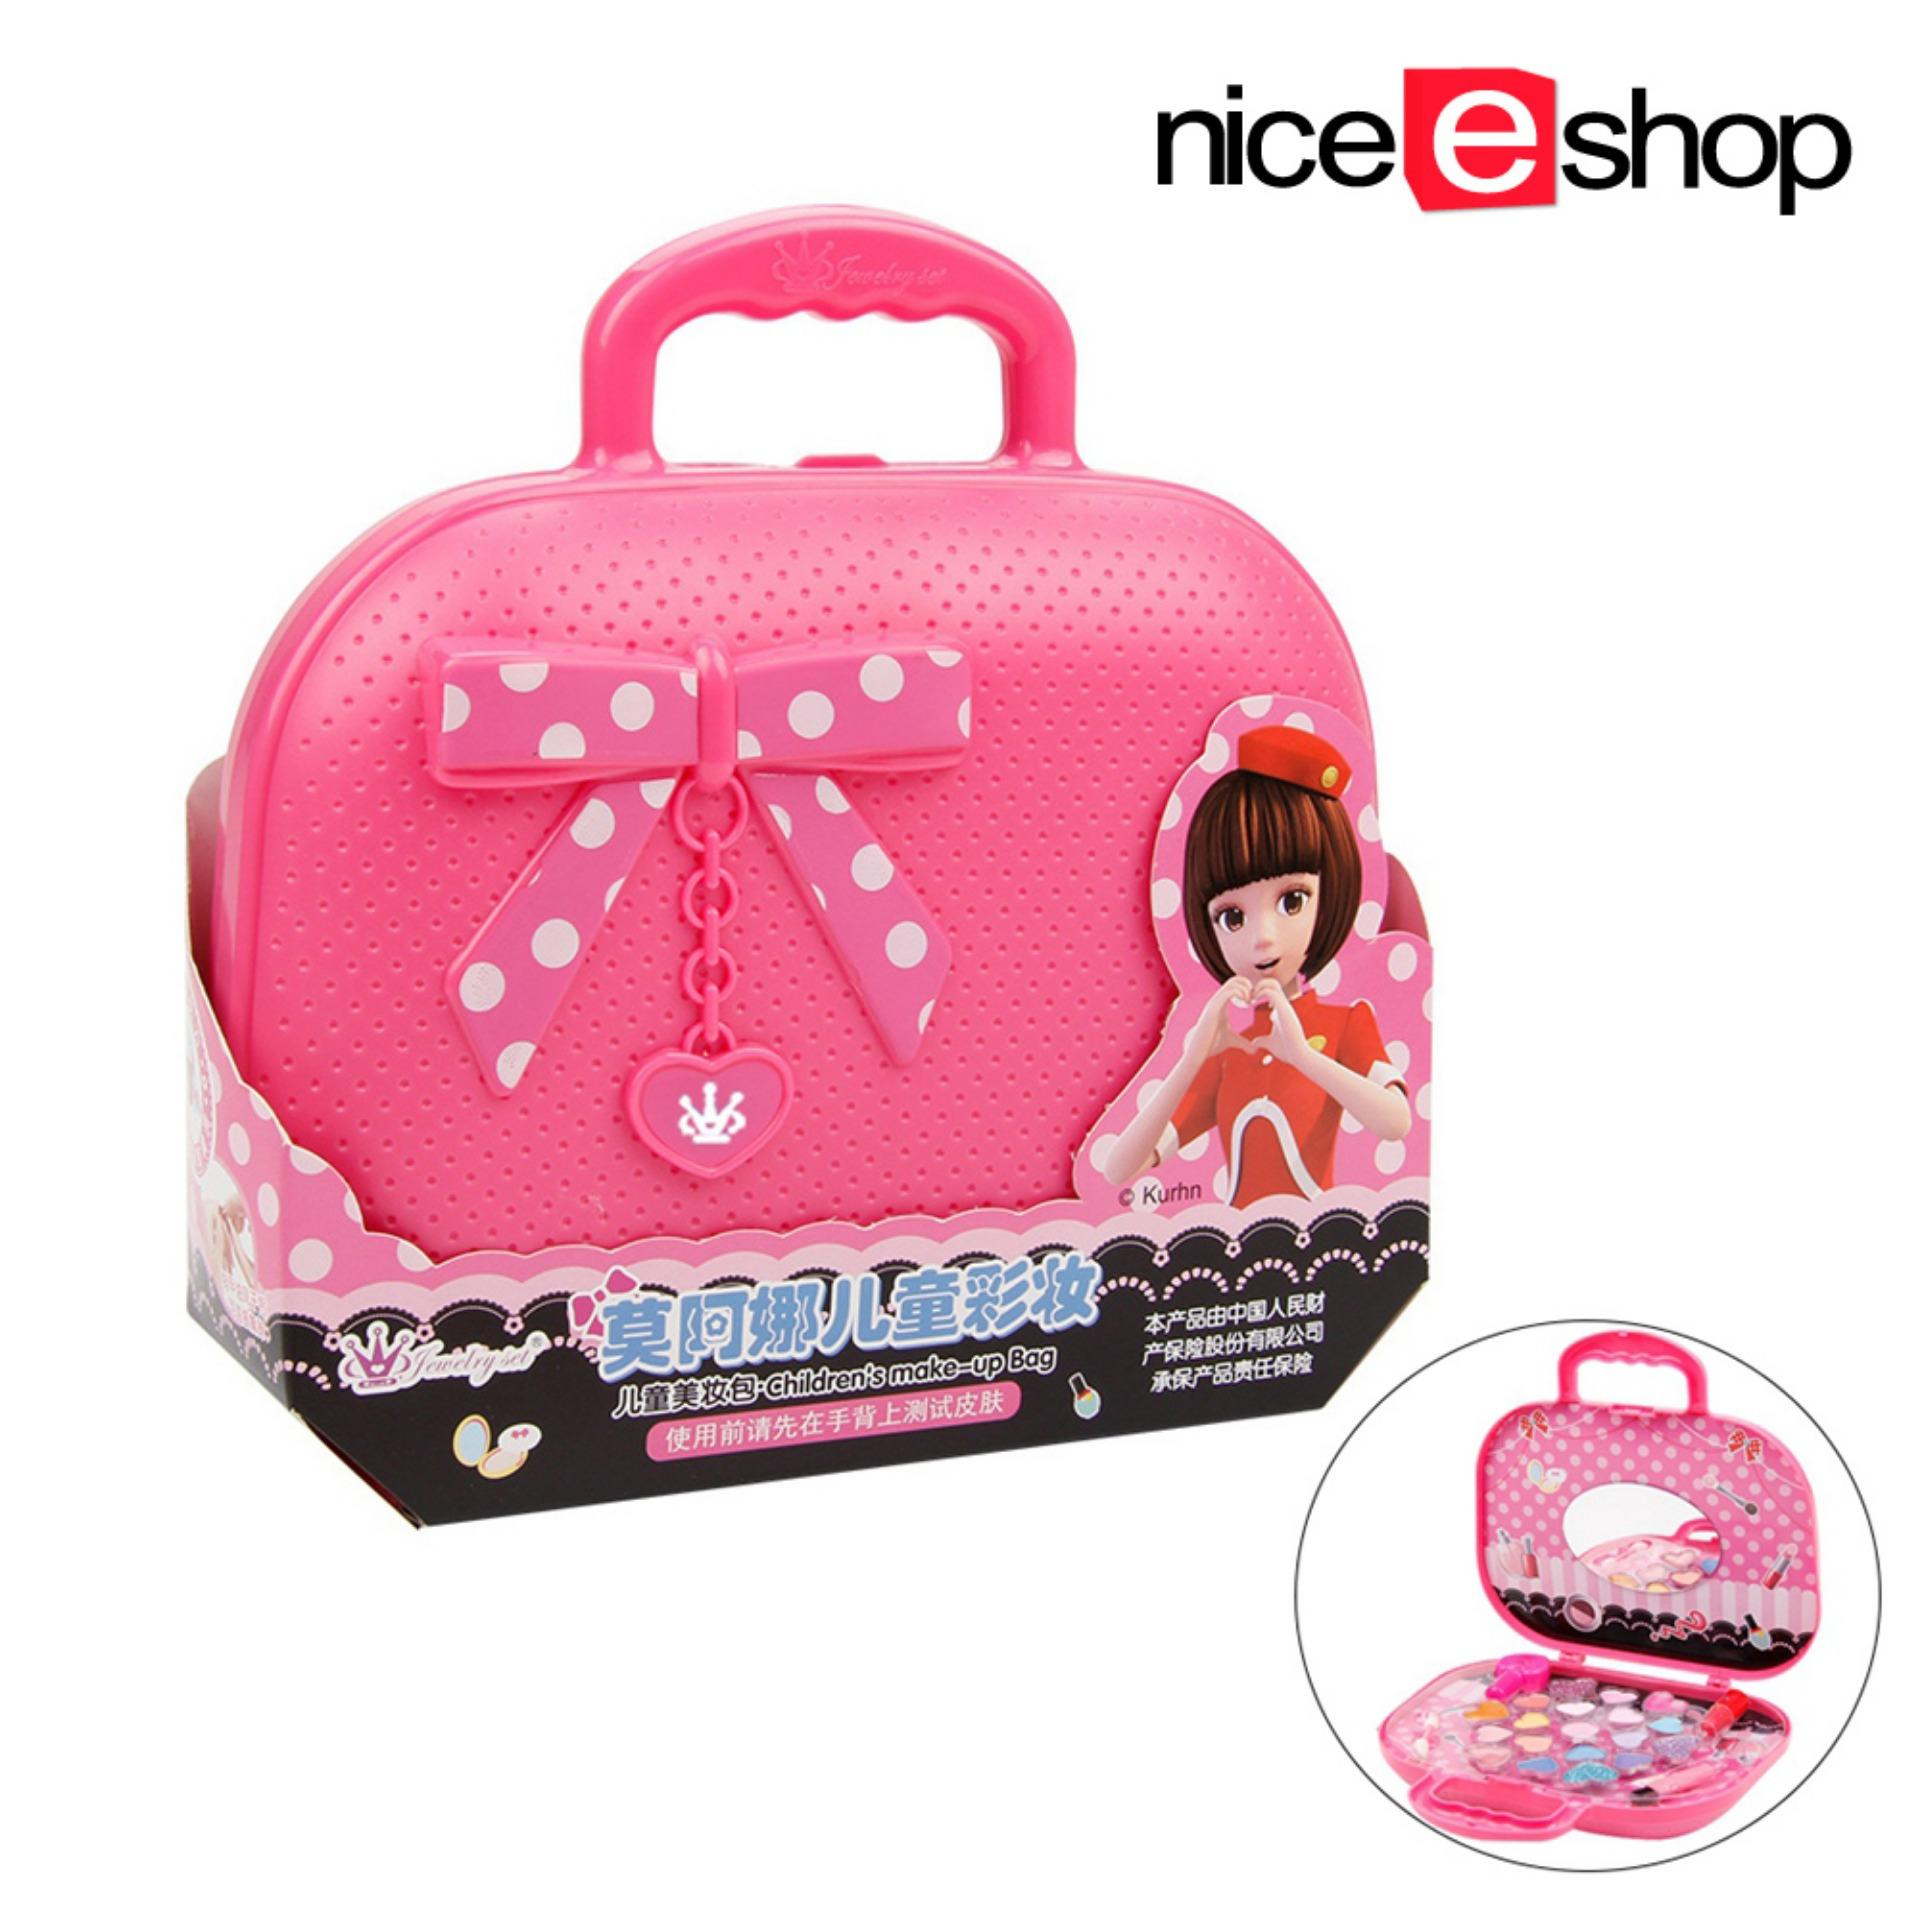 b5de8af4917d niceEshop Girl Cosmetic Set Princess Makeup,Girls Makeup Kit,Fold Out  Makeup Palette with Mirror and Secure Close - Safety Tested- Non Toxic